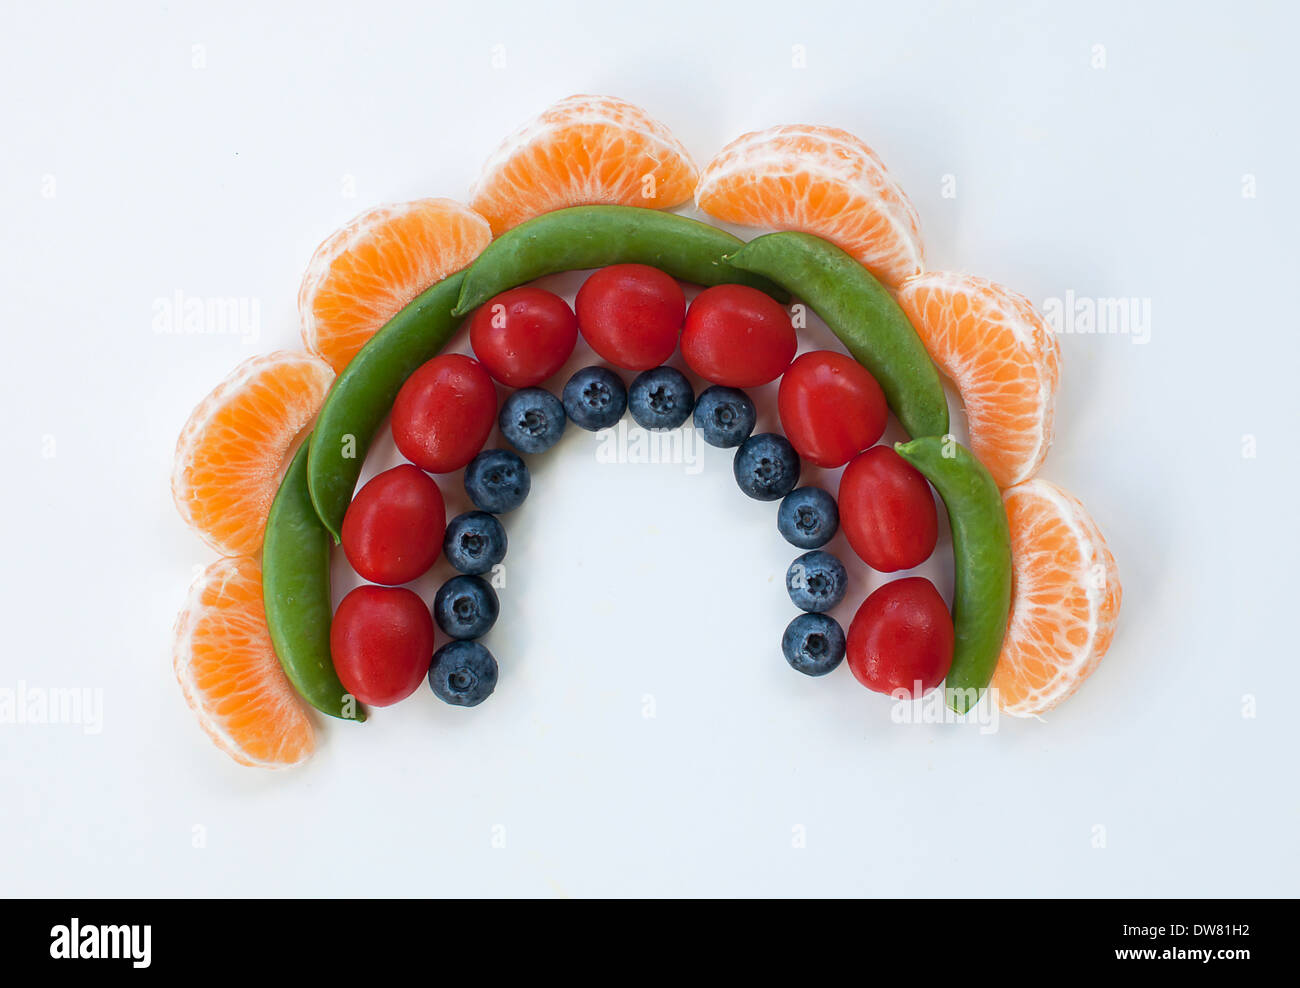 Food rainbow - Stock Image